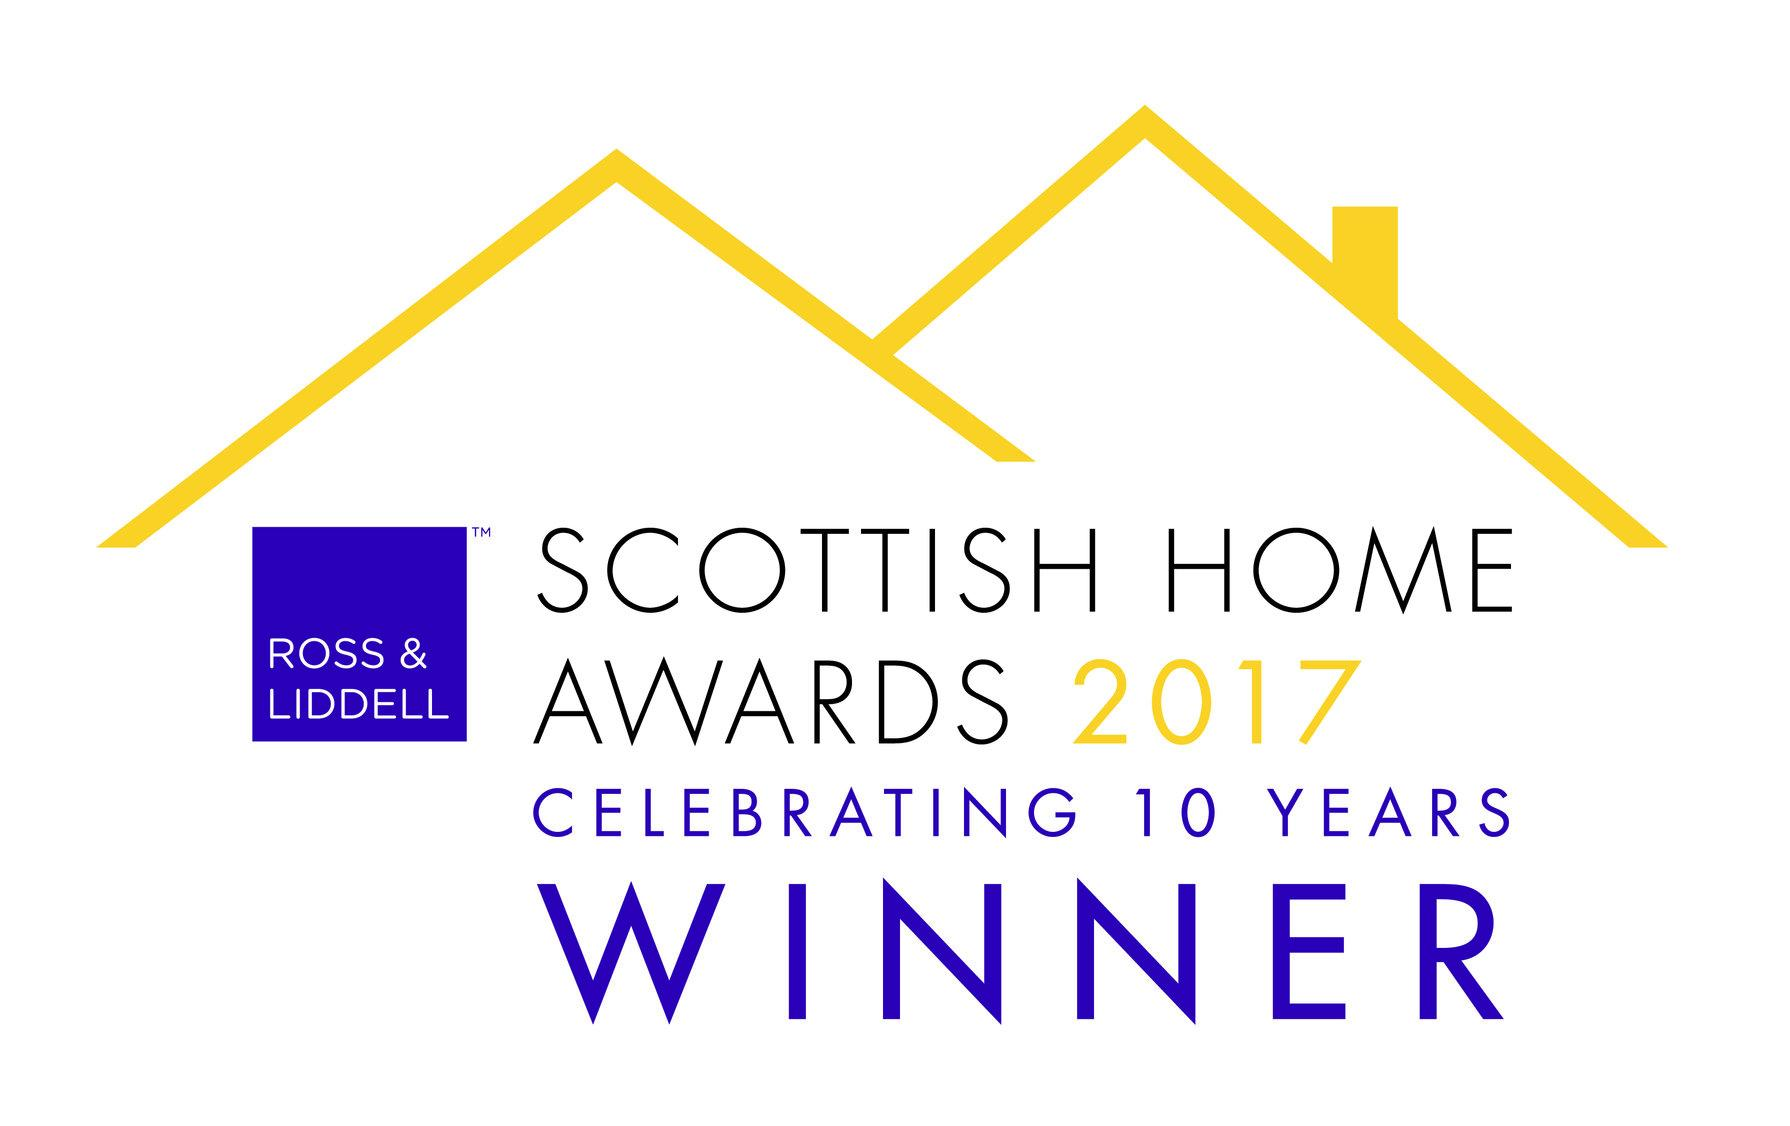 Scottish Home Awards Winners 2017 Logo - resized